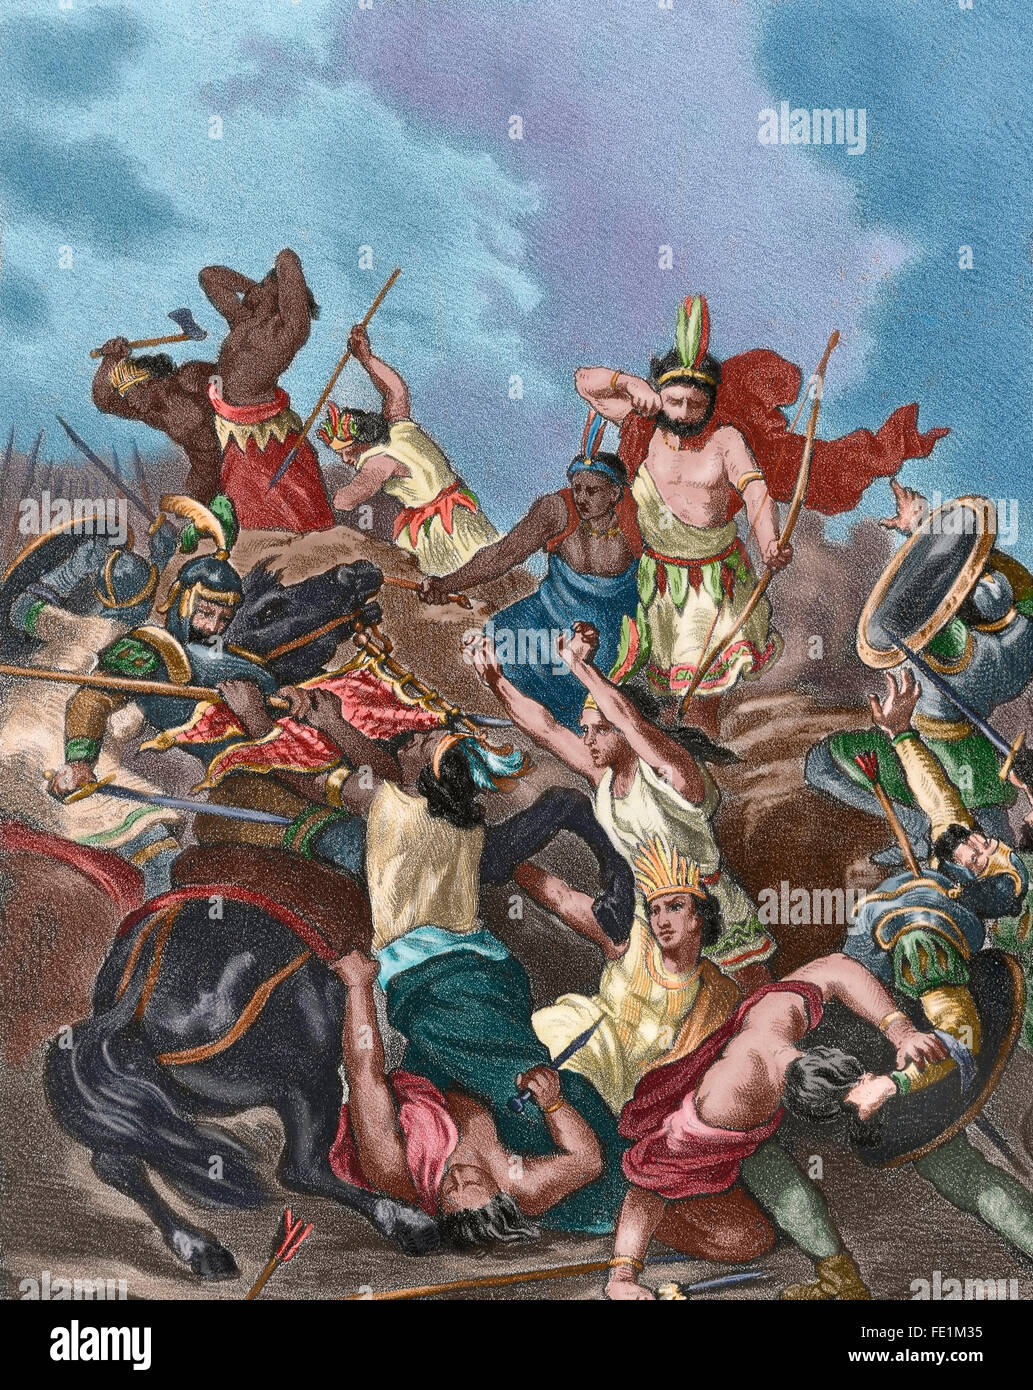 The conquest of the aztec and